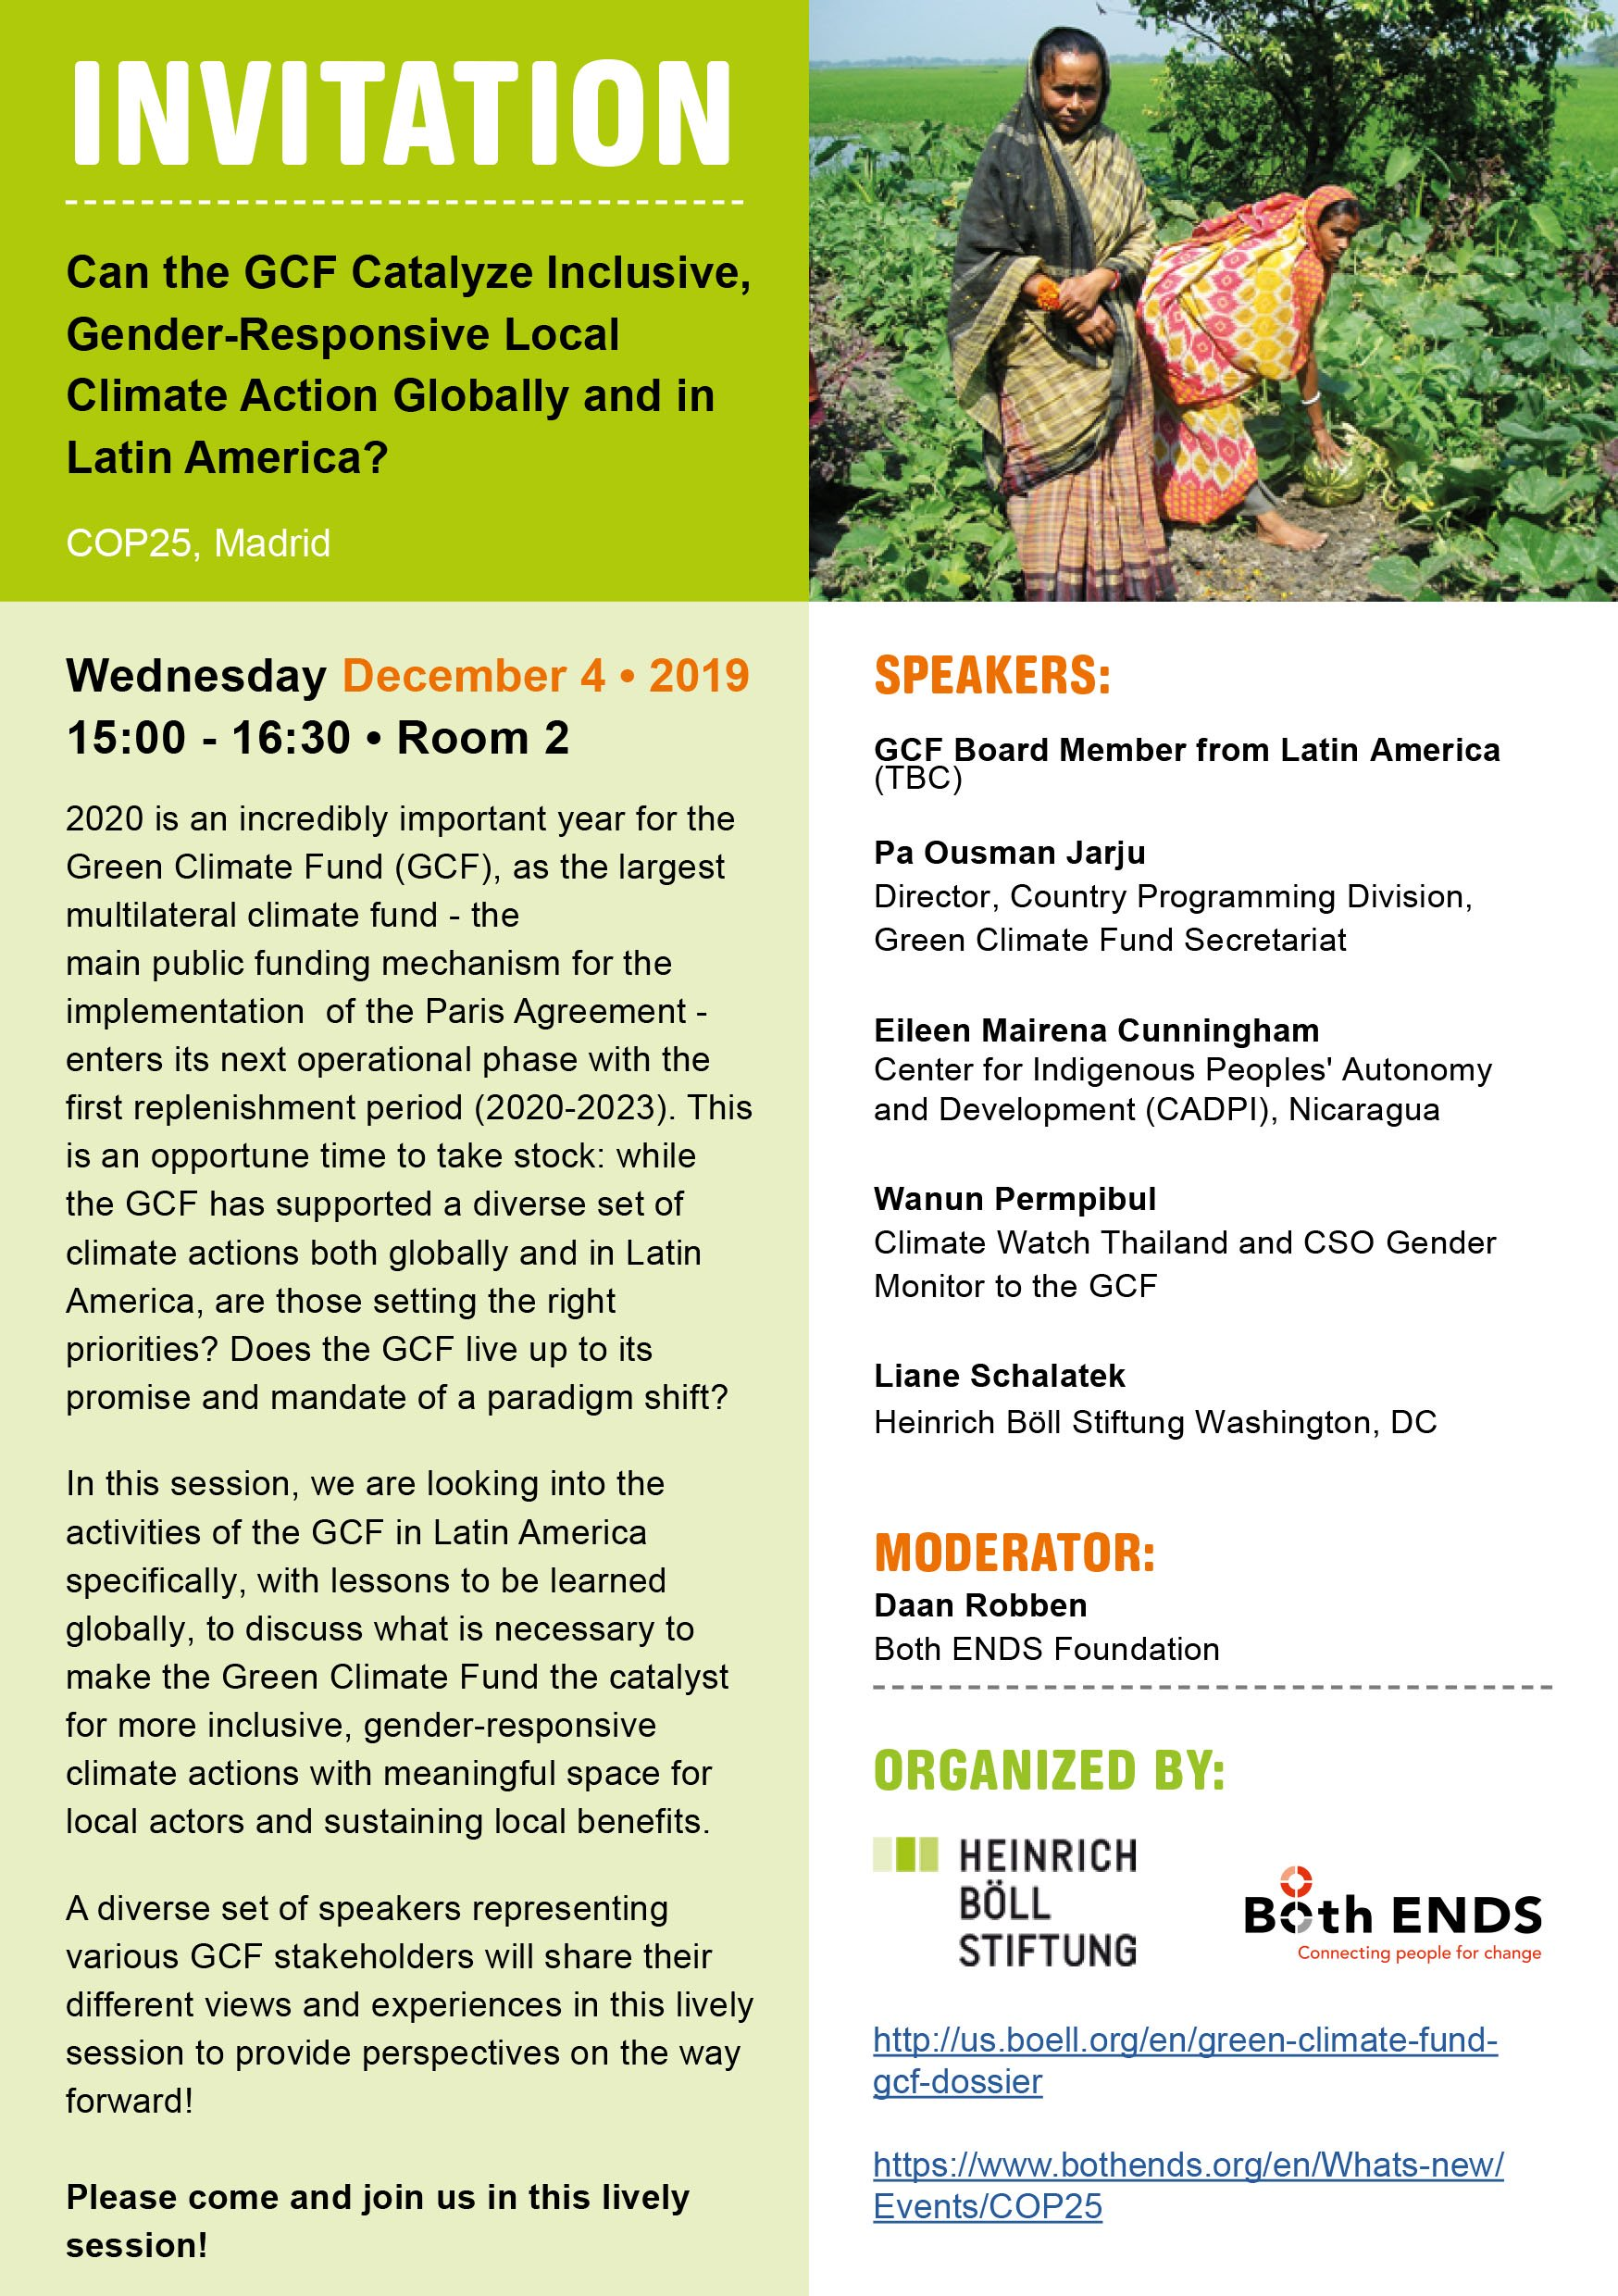 191202_COP 25 Side Event_December 4th_Catalyzing GCF gender-responsive local action